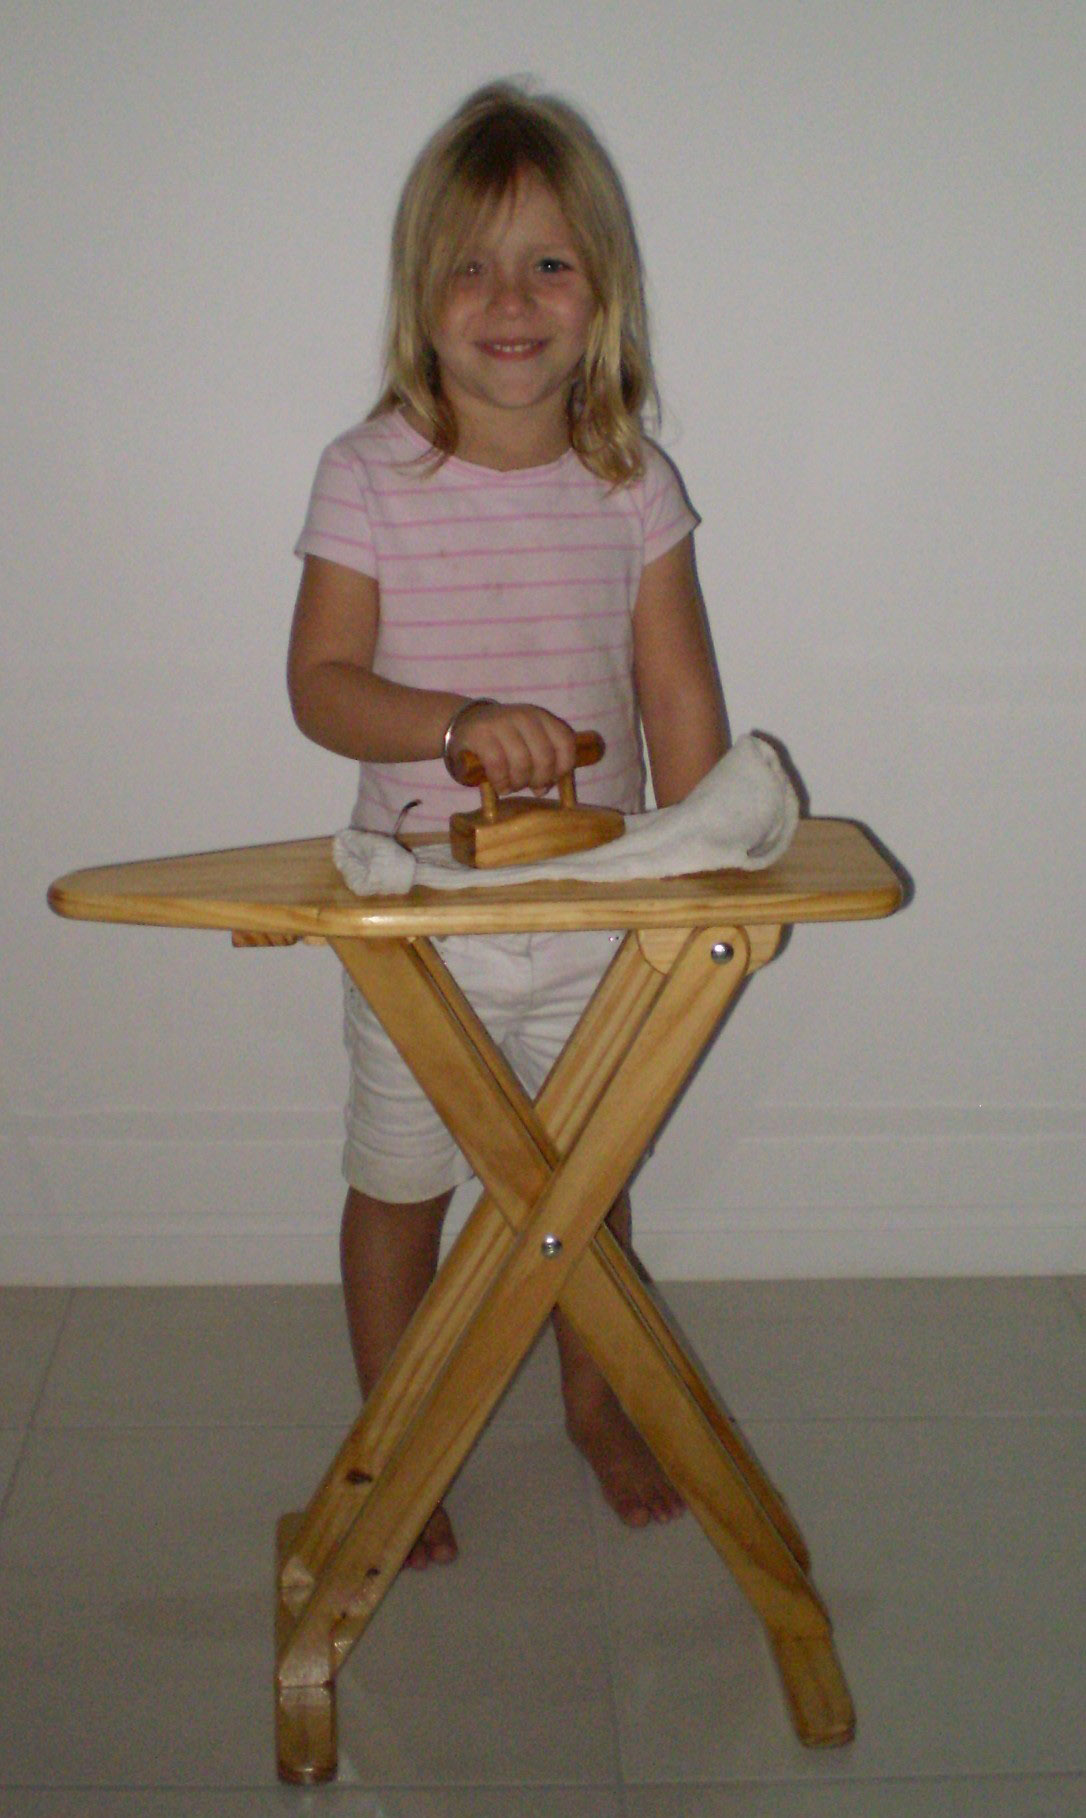 Toy Ironing board wooden plan